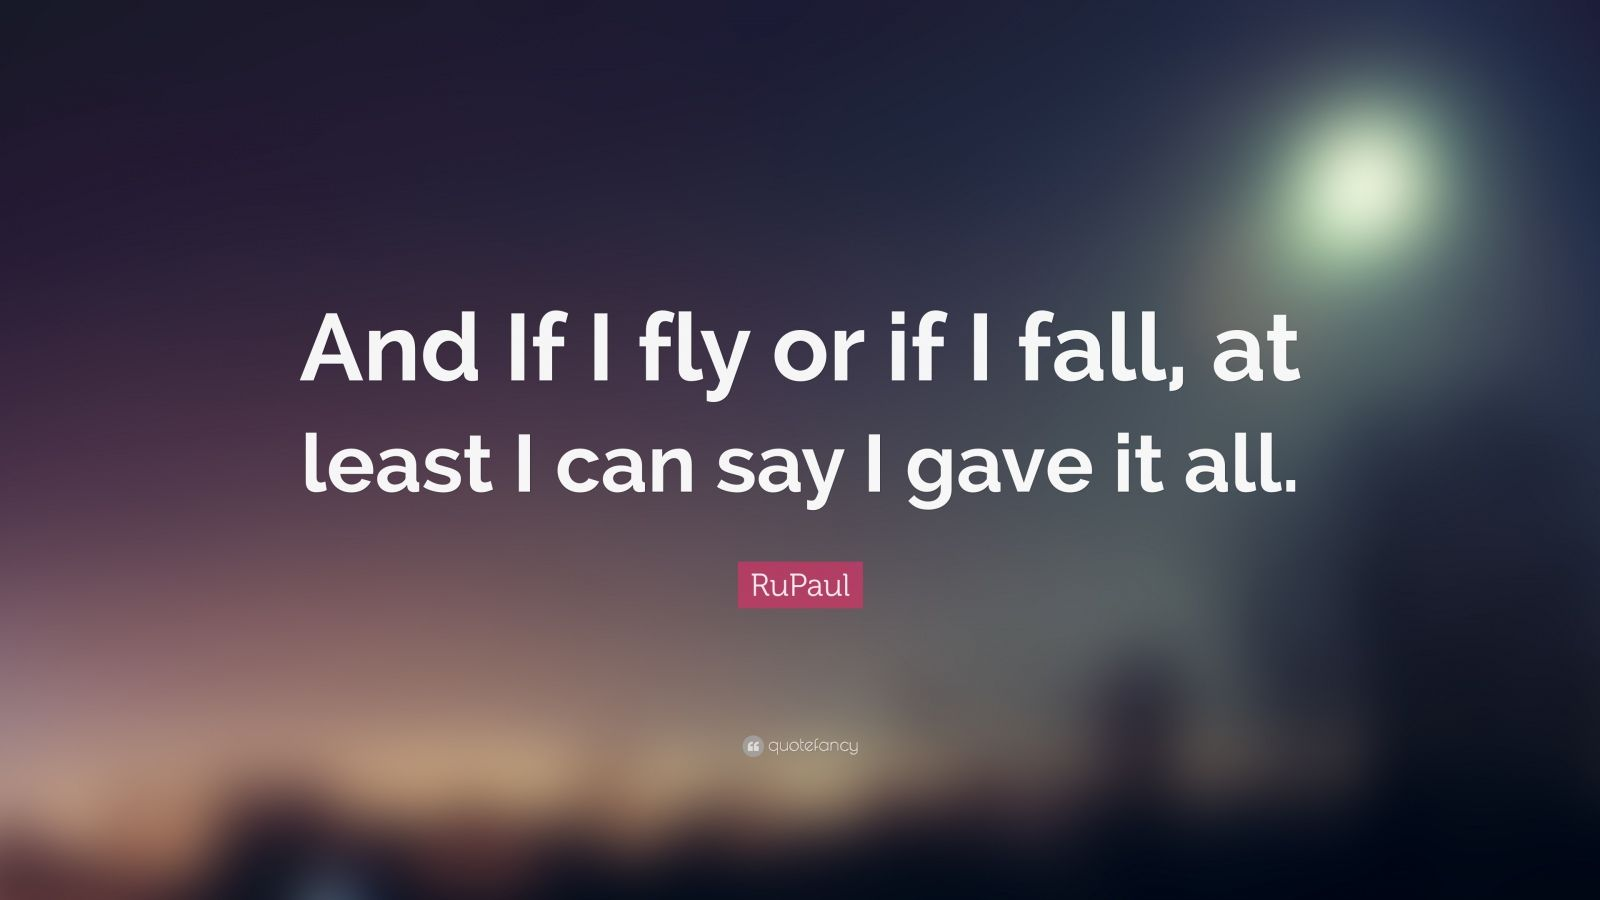 Fall Verse Wallpaper Rupaul Quote And If I Fly Or If I Fall At Least I Can